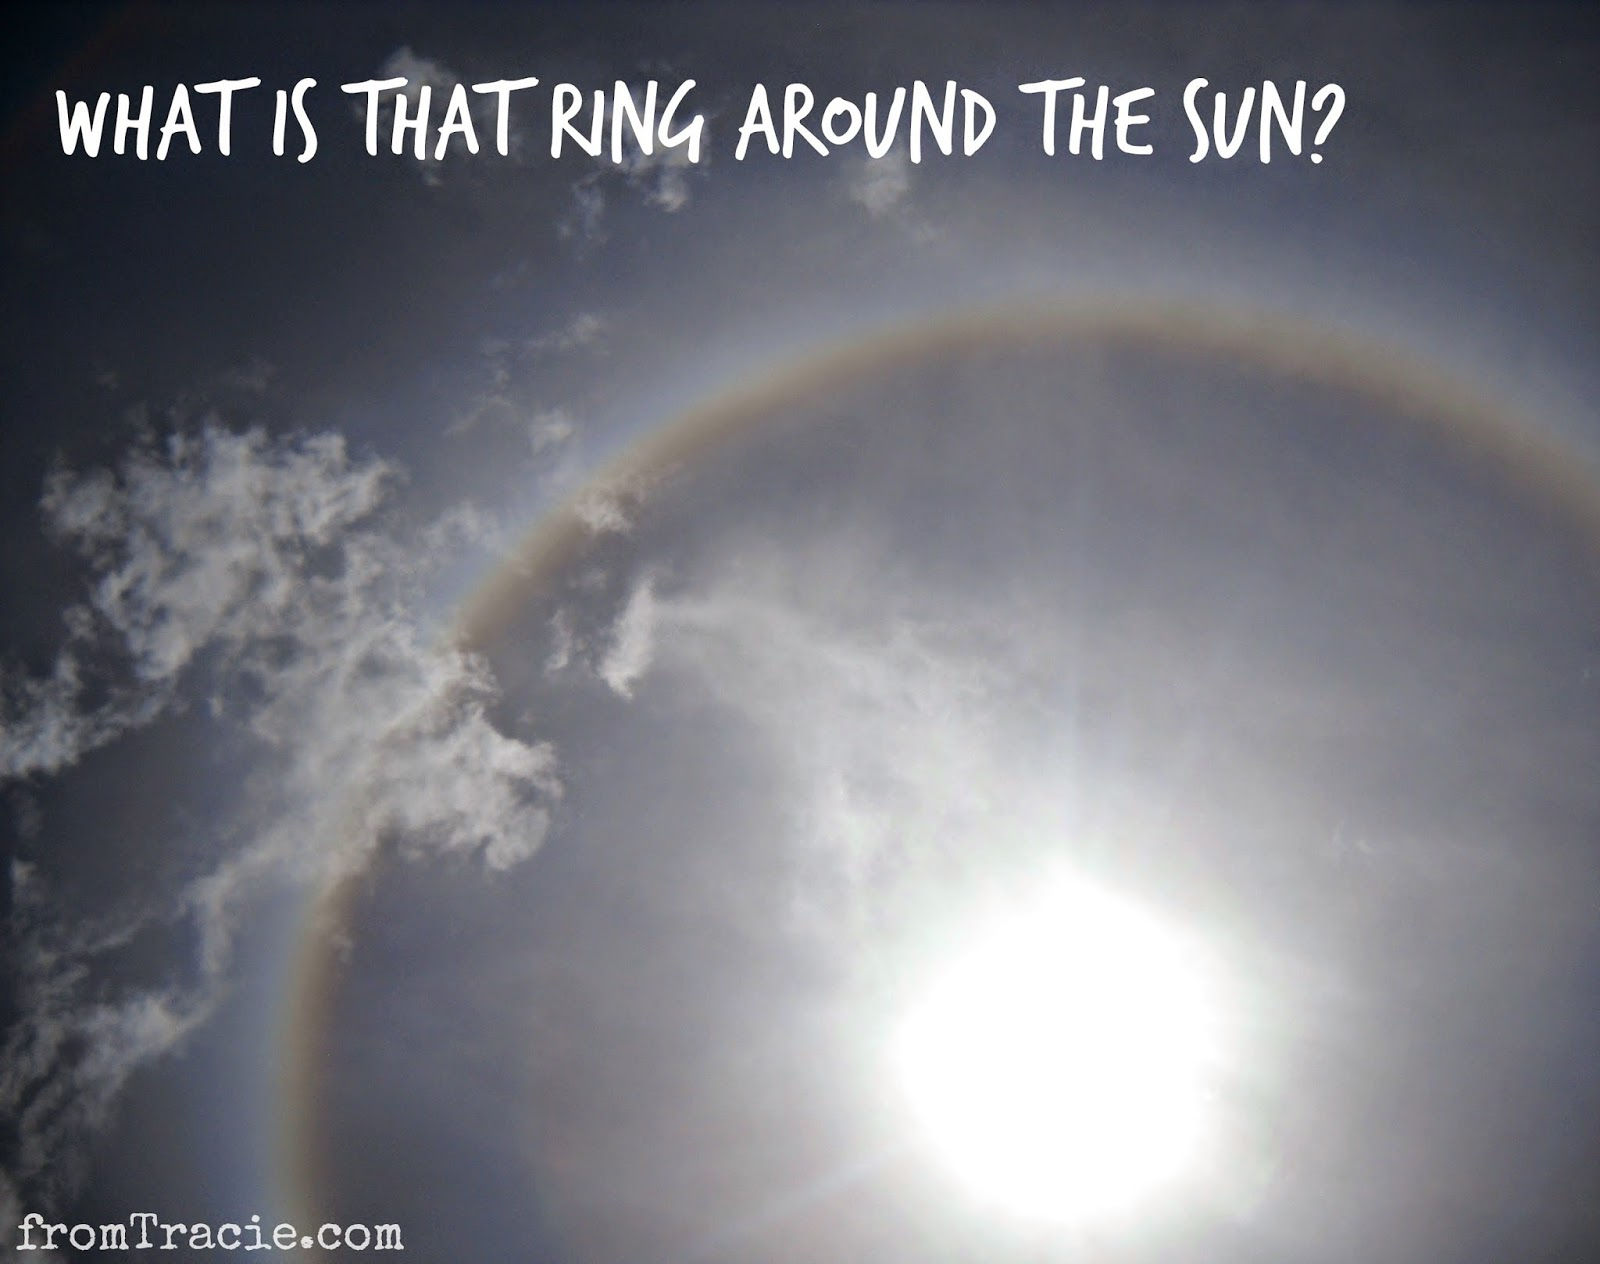 What is the ring around the sun?